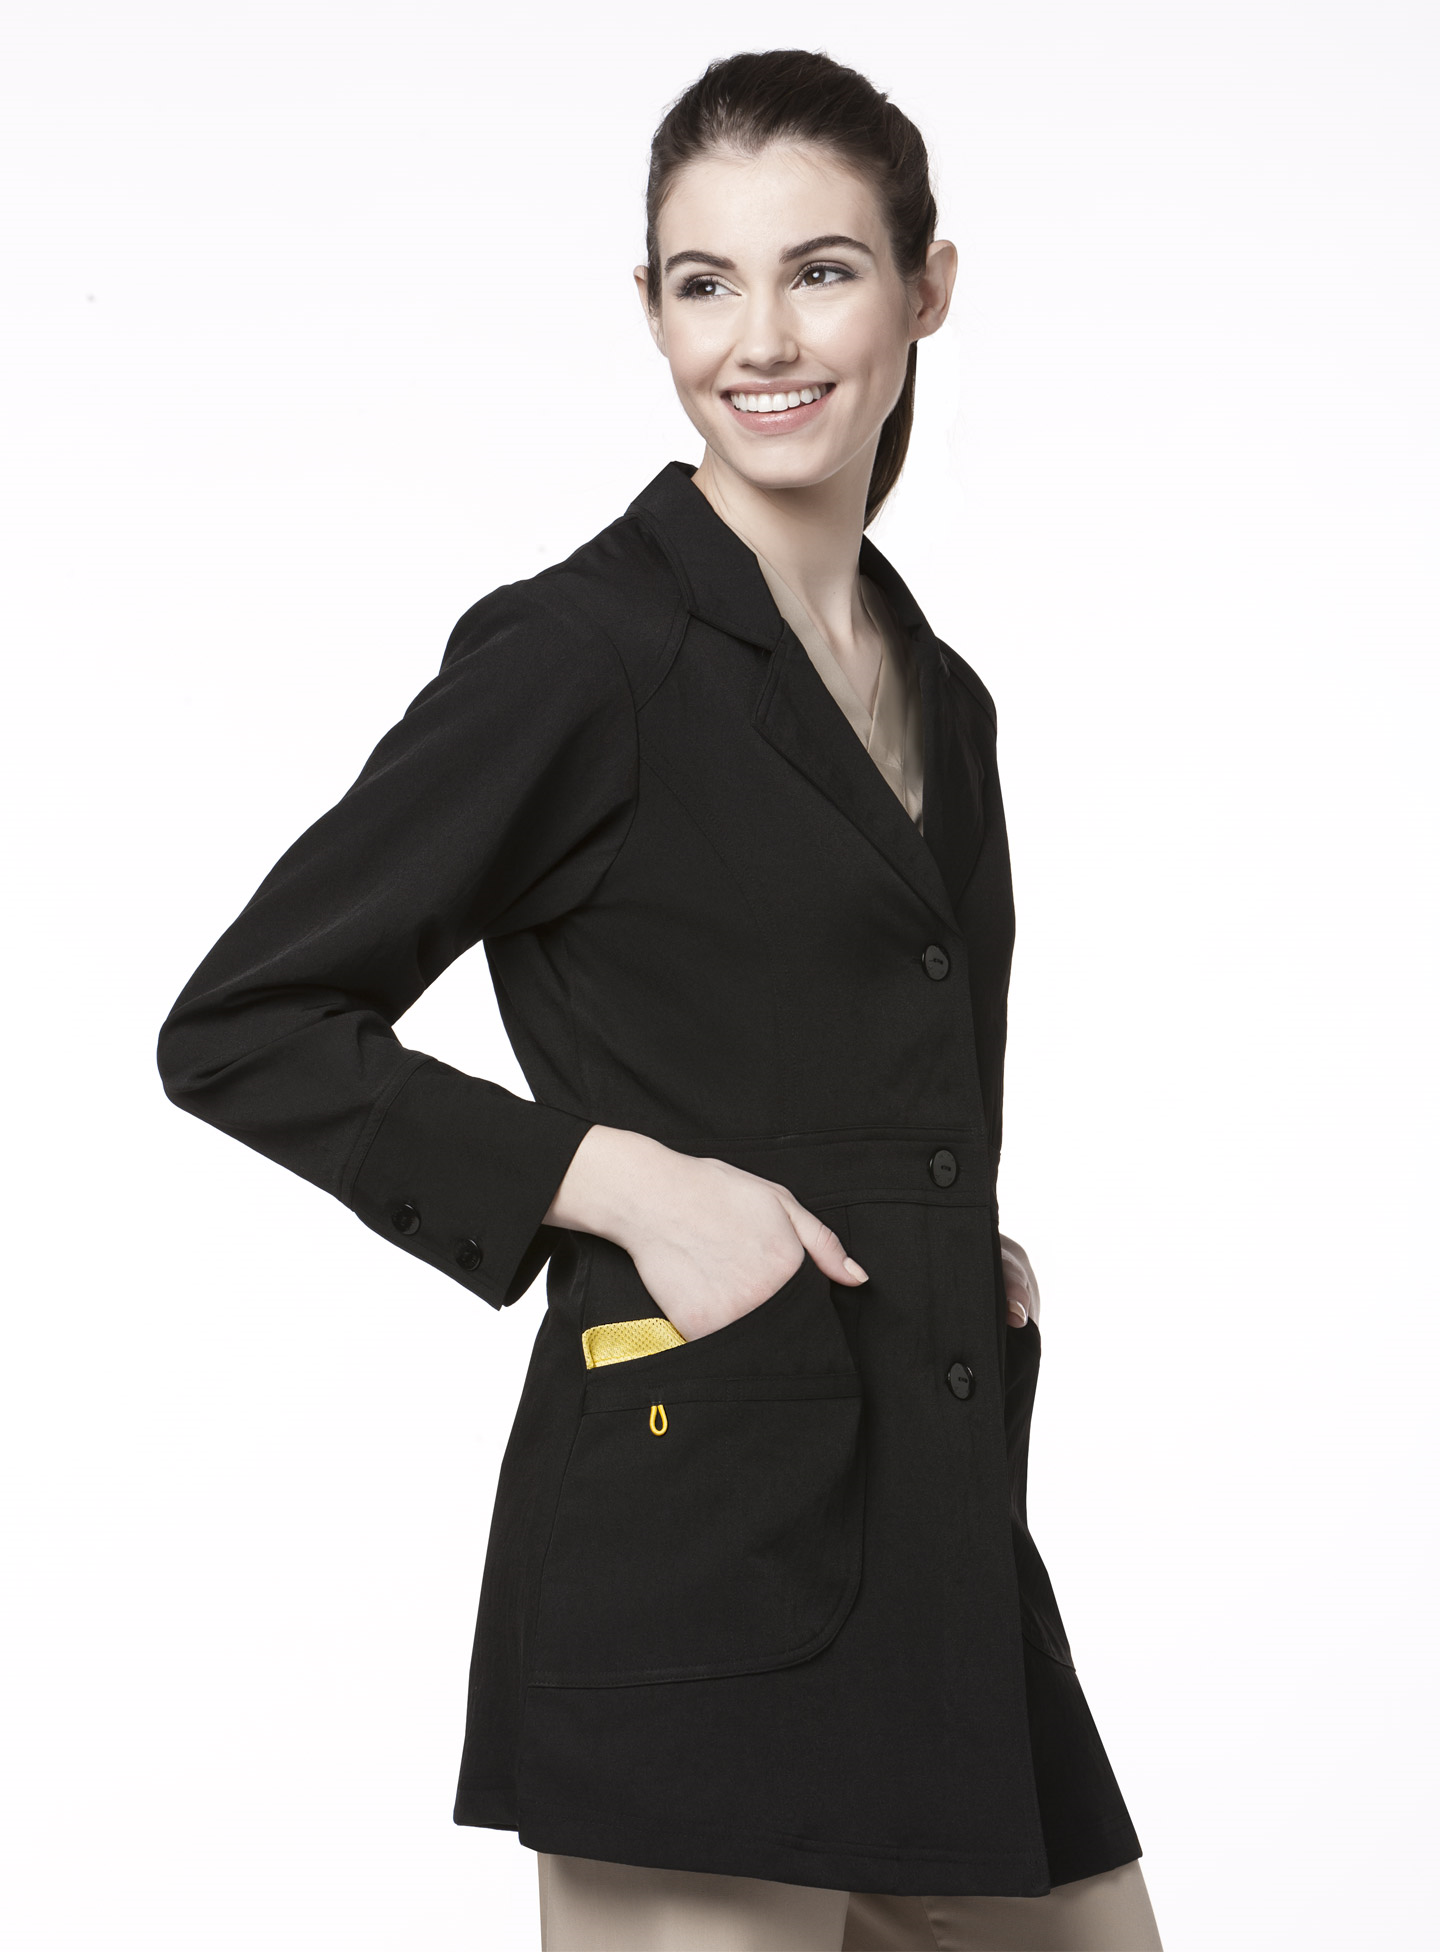 Wink LabCoat Black